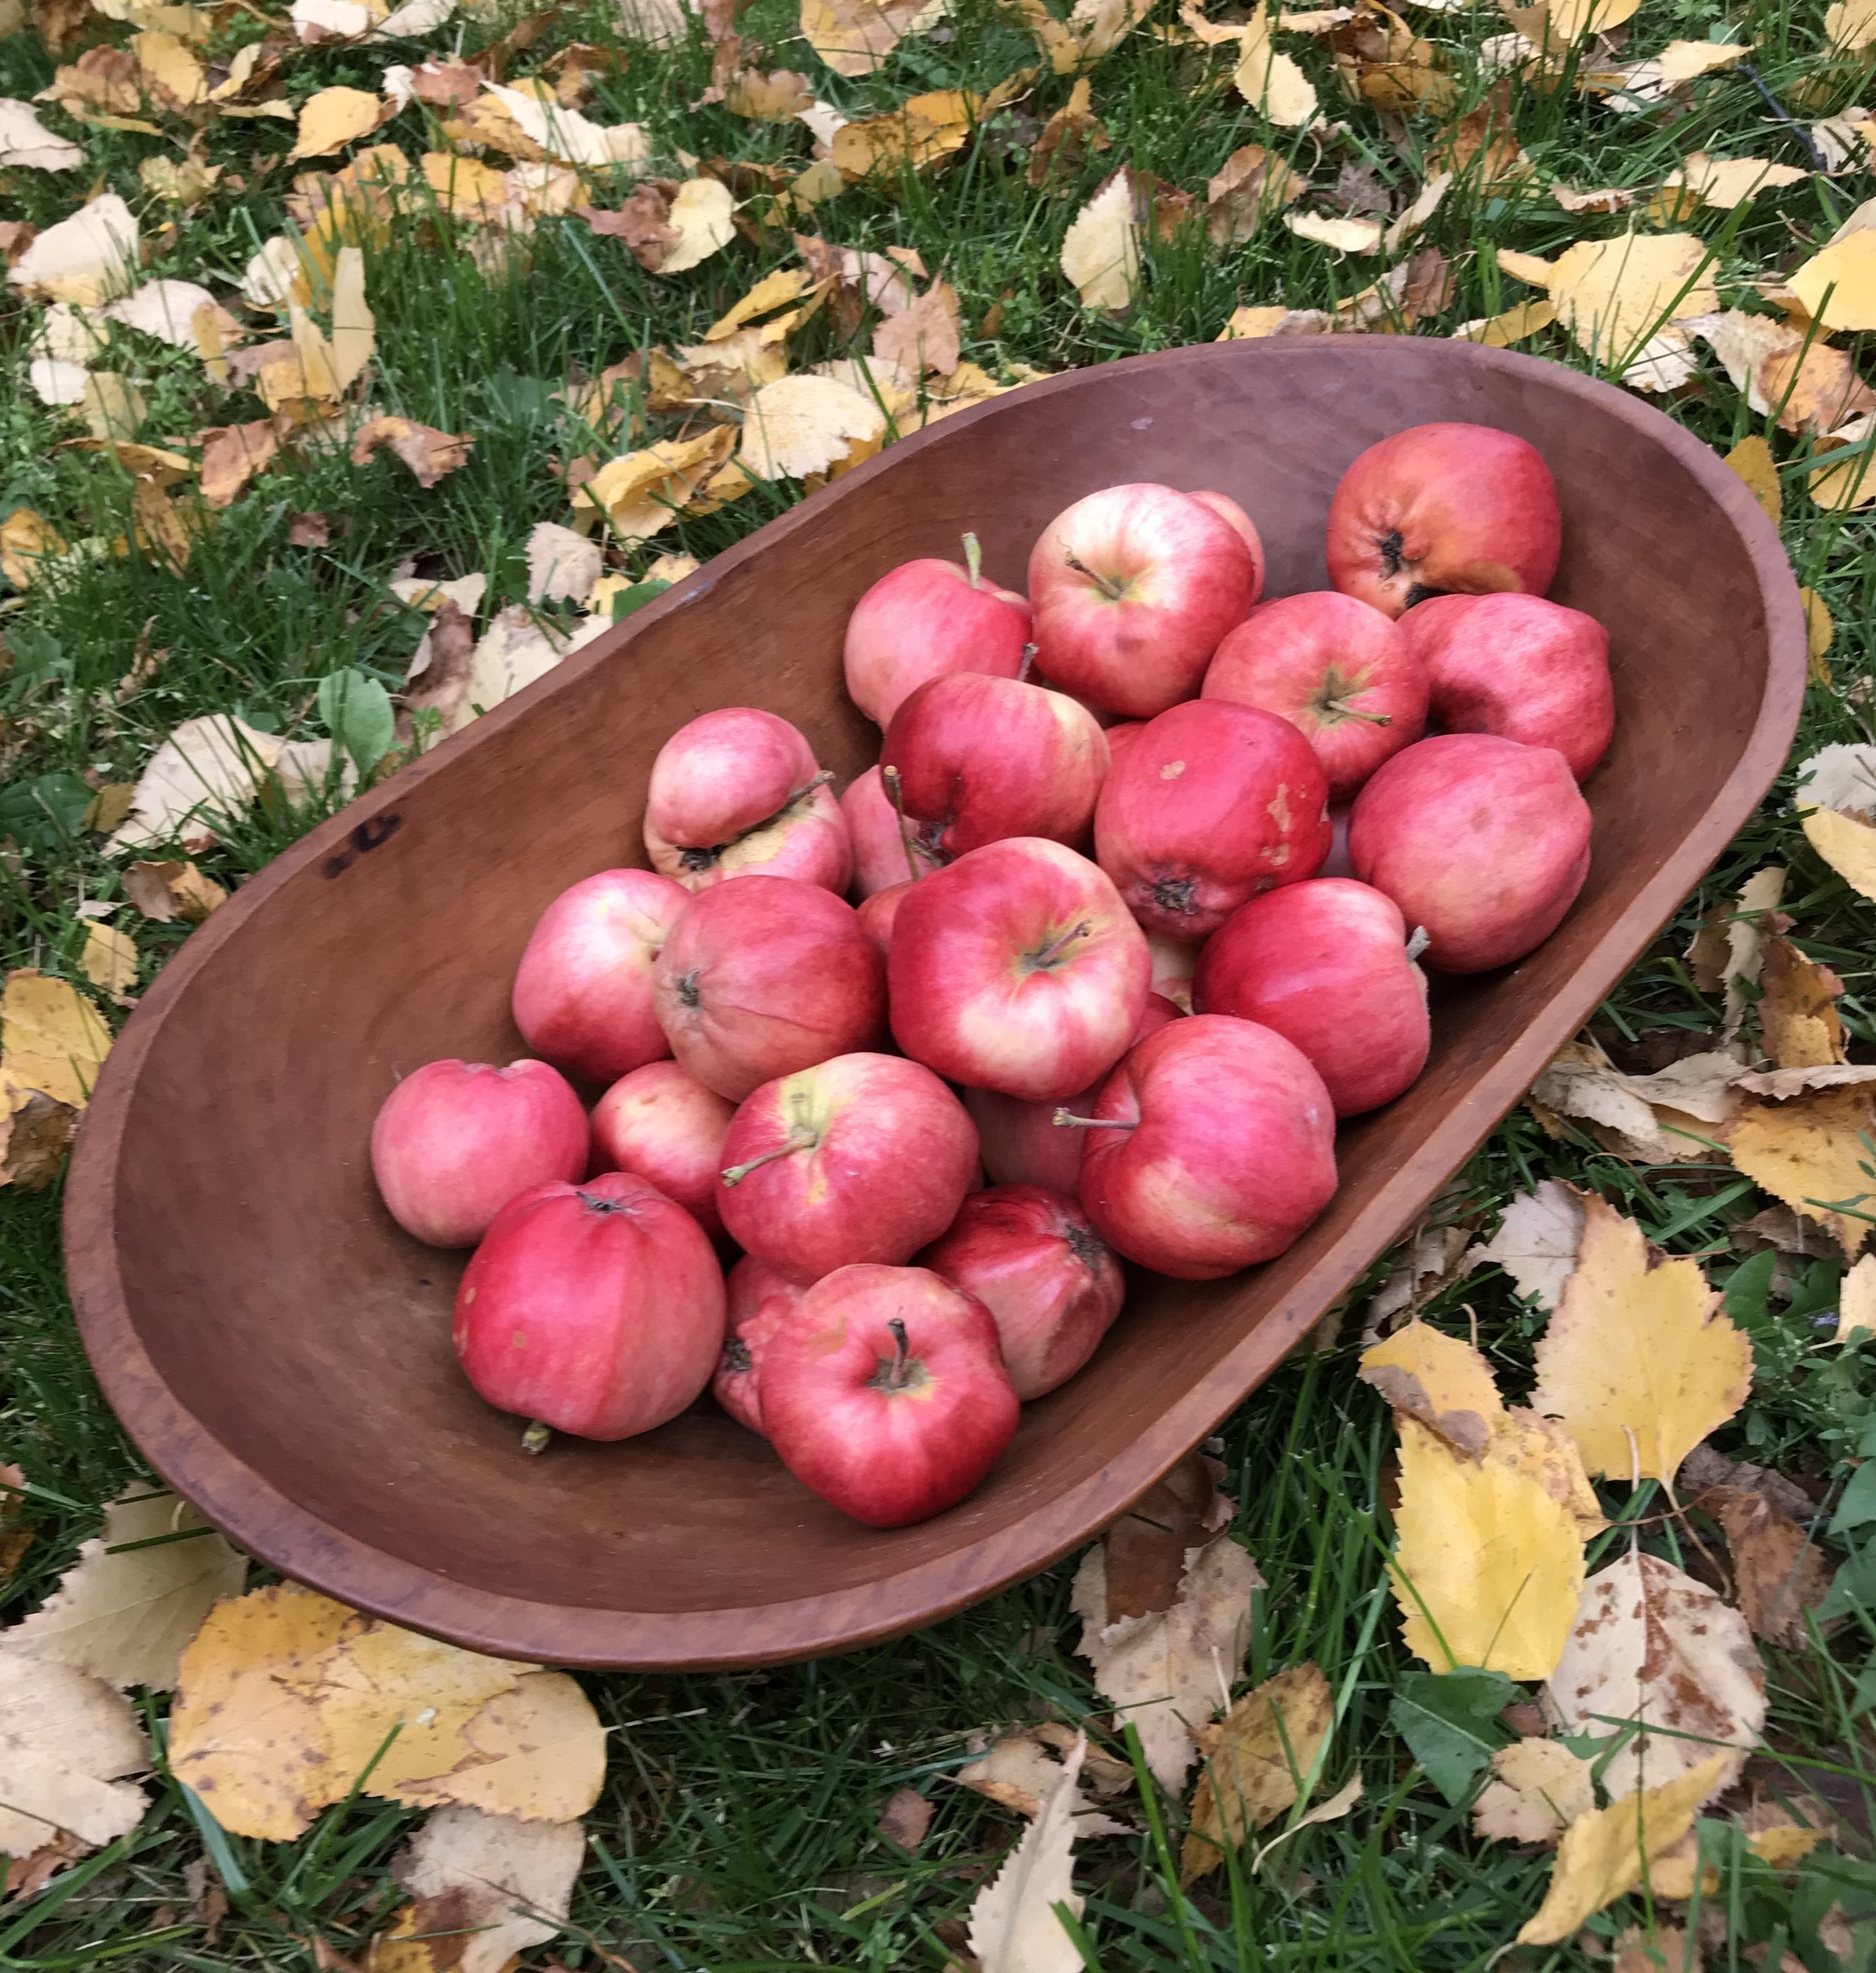 Bagged apples or homegrown mini apples give you a blood sugar friendly serving. Large grocery store apples can pack way too much sugar for your body to handle all at once. Bagged apples also cost a lot less which makes it easier to afford to buy organic versions.  (These cute, lumpy little apples are from my yard.)